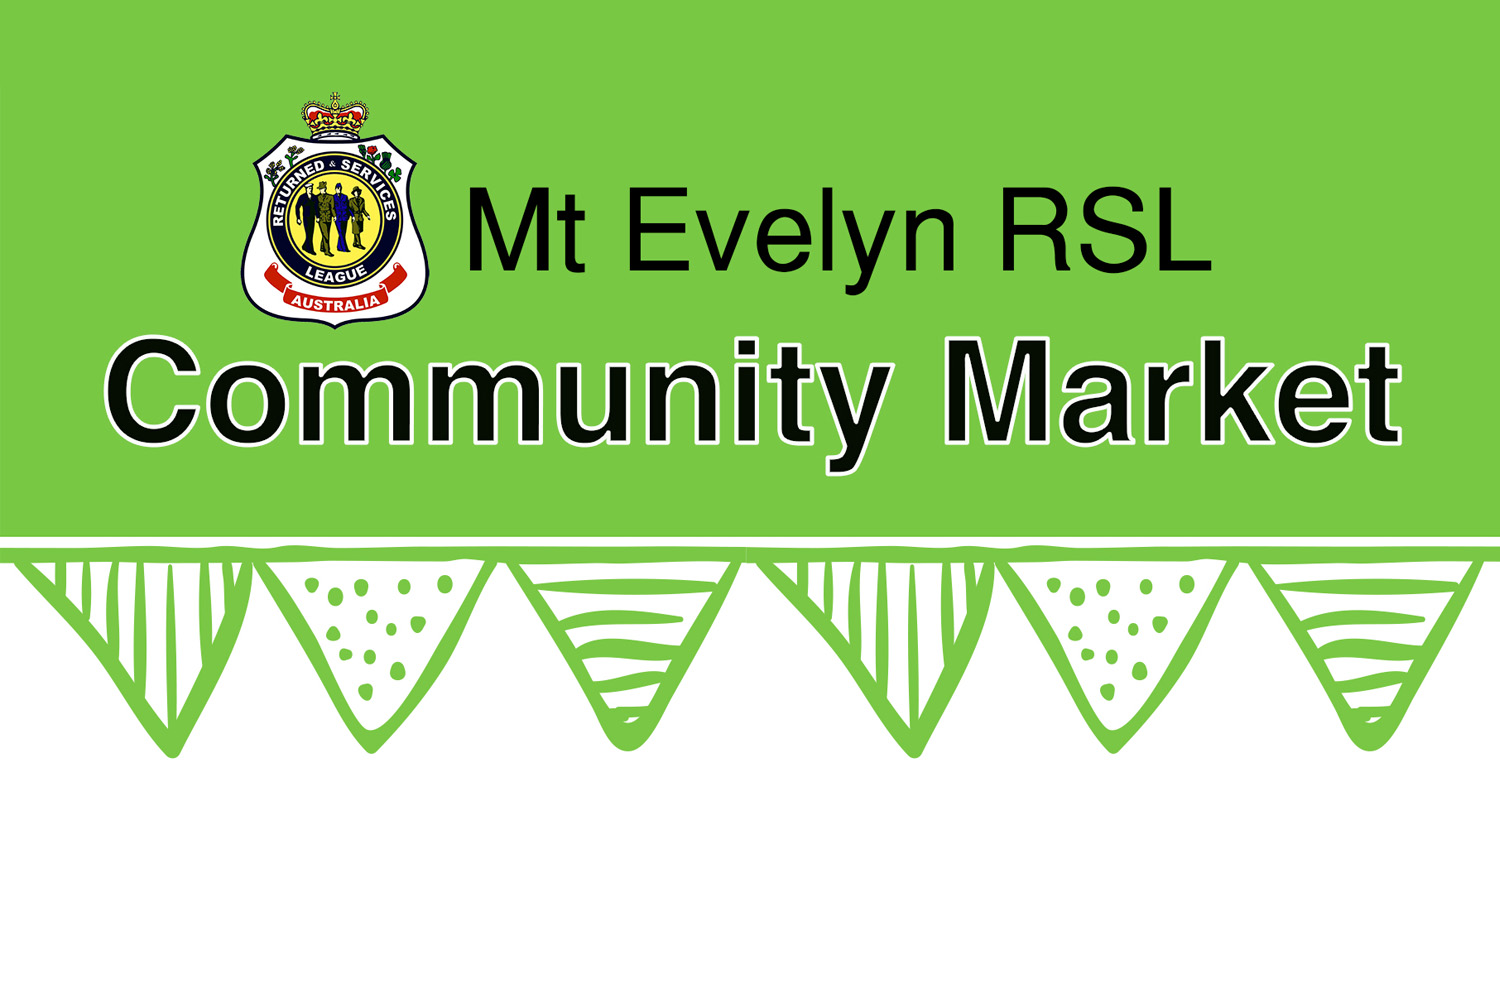 Mt Evelyn RSL Community Market